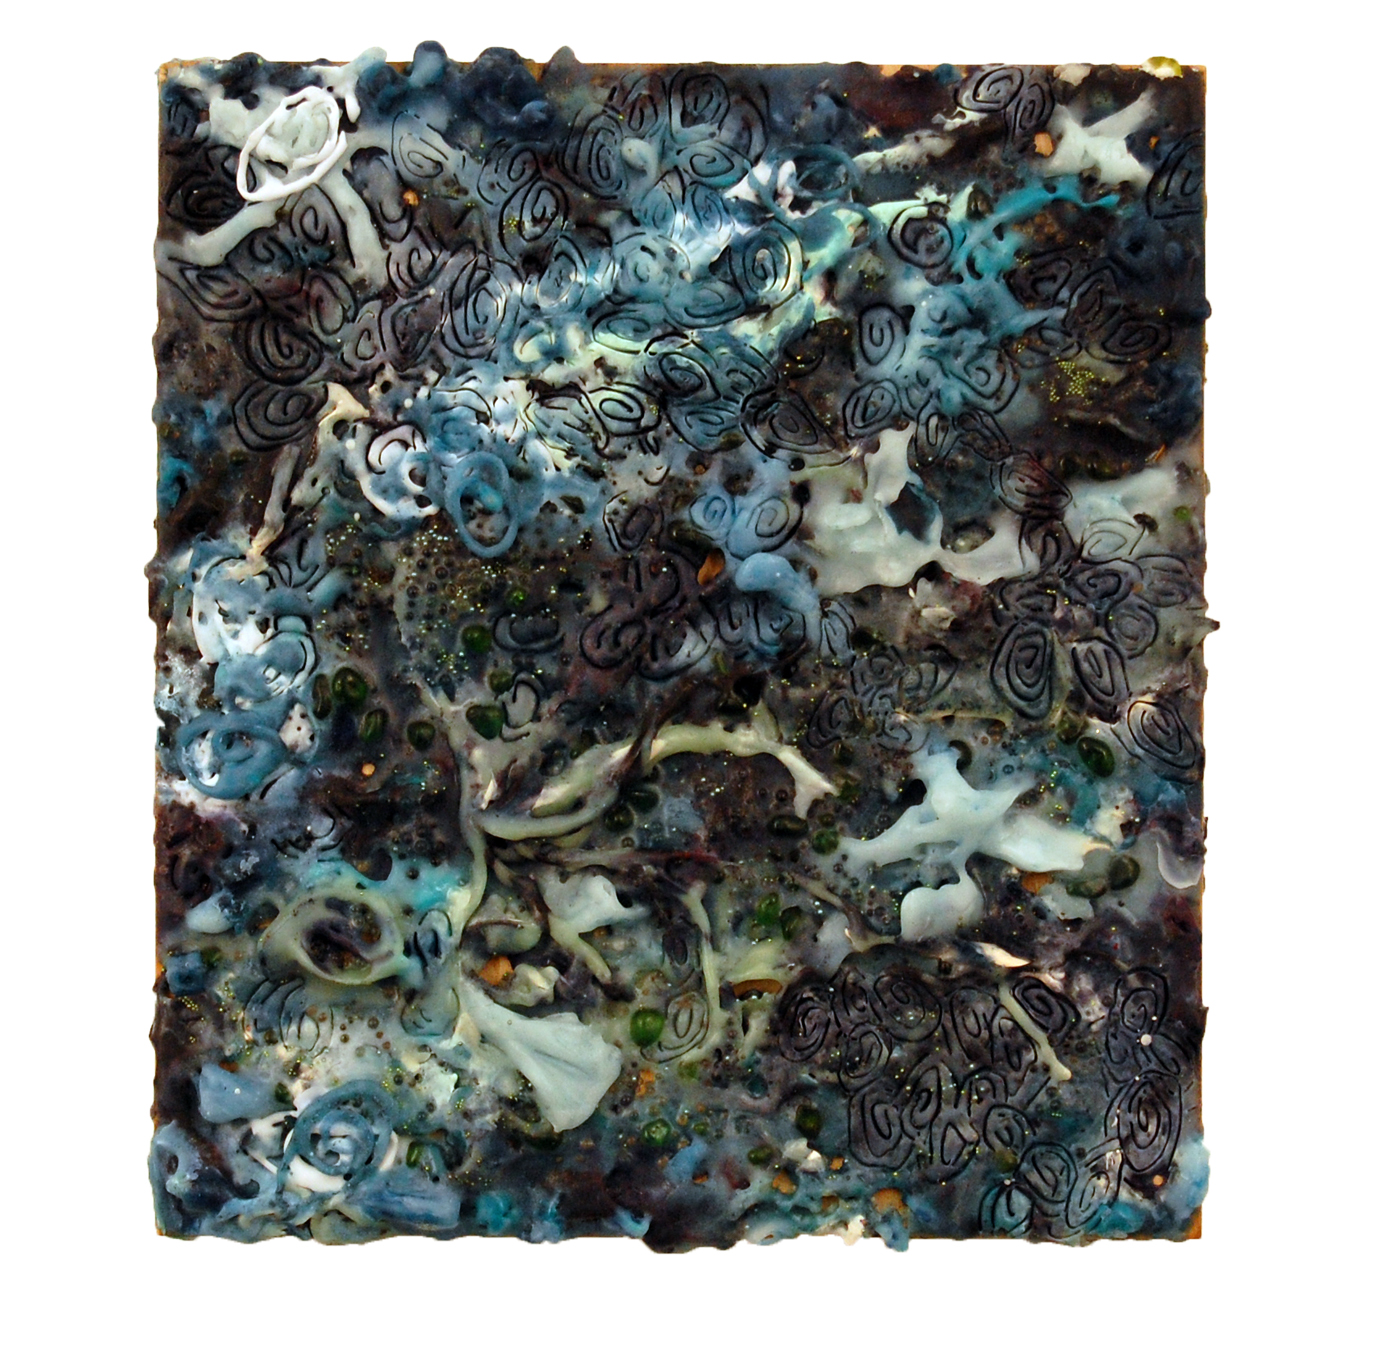 Sea Level, 2012, encaustic and glass beads on panel, 8 x 9 inches